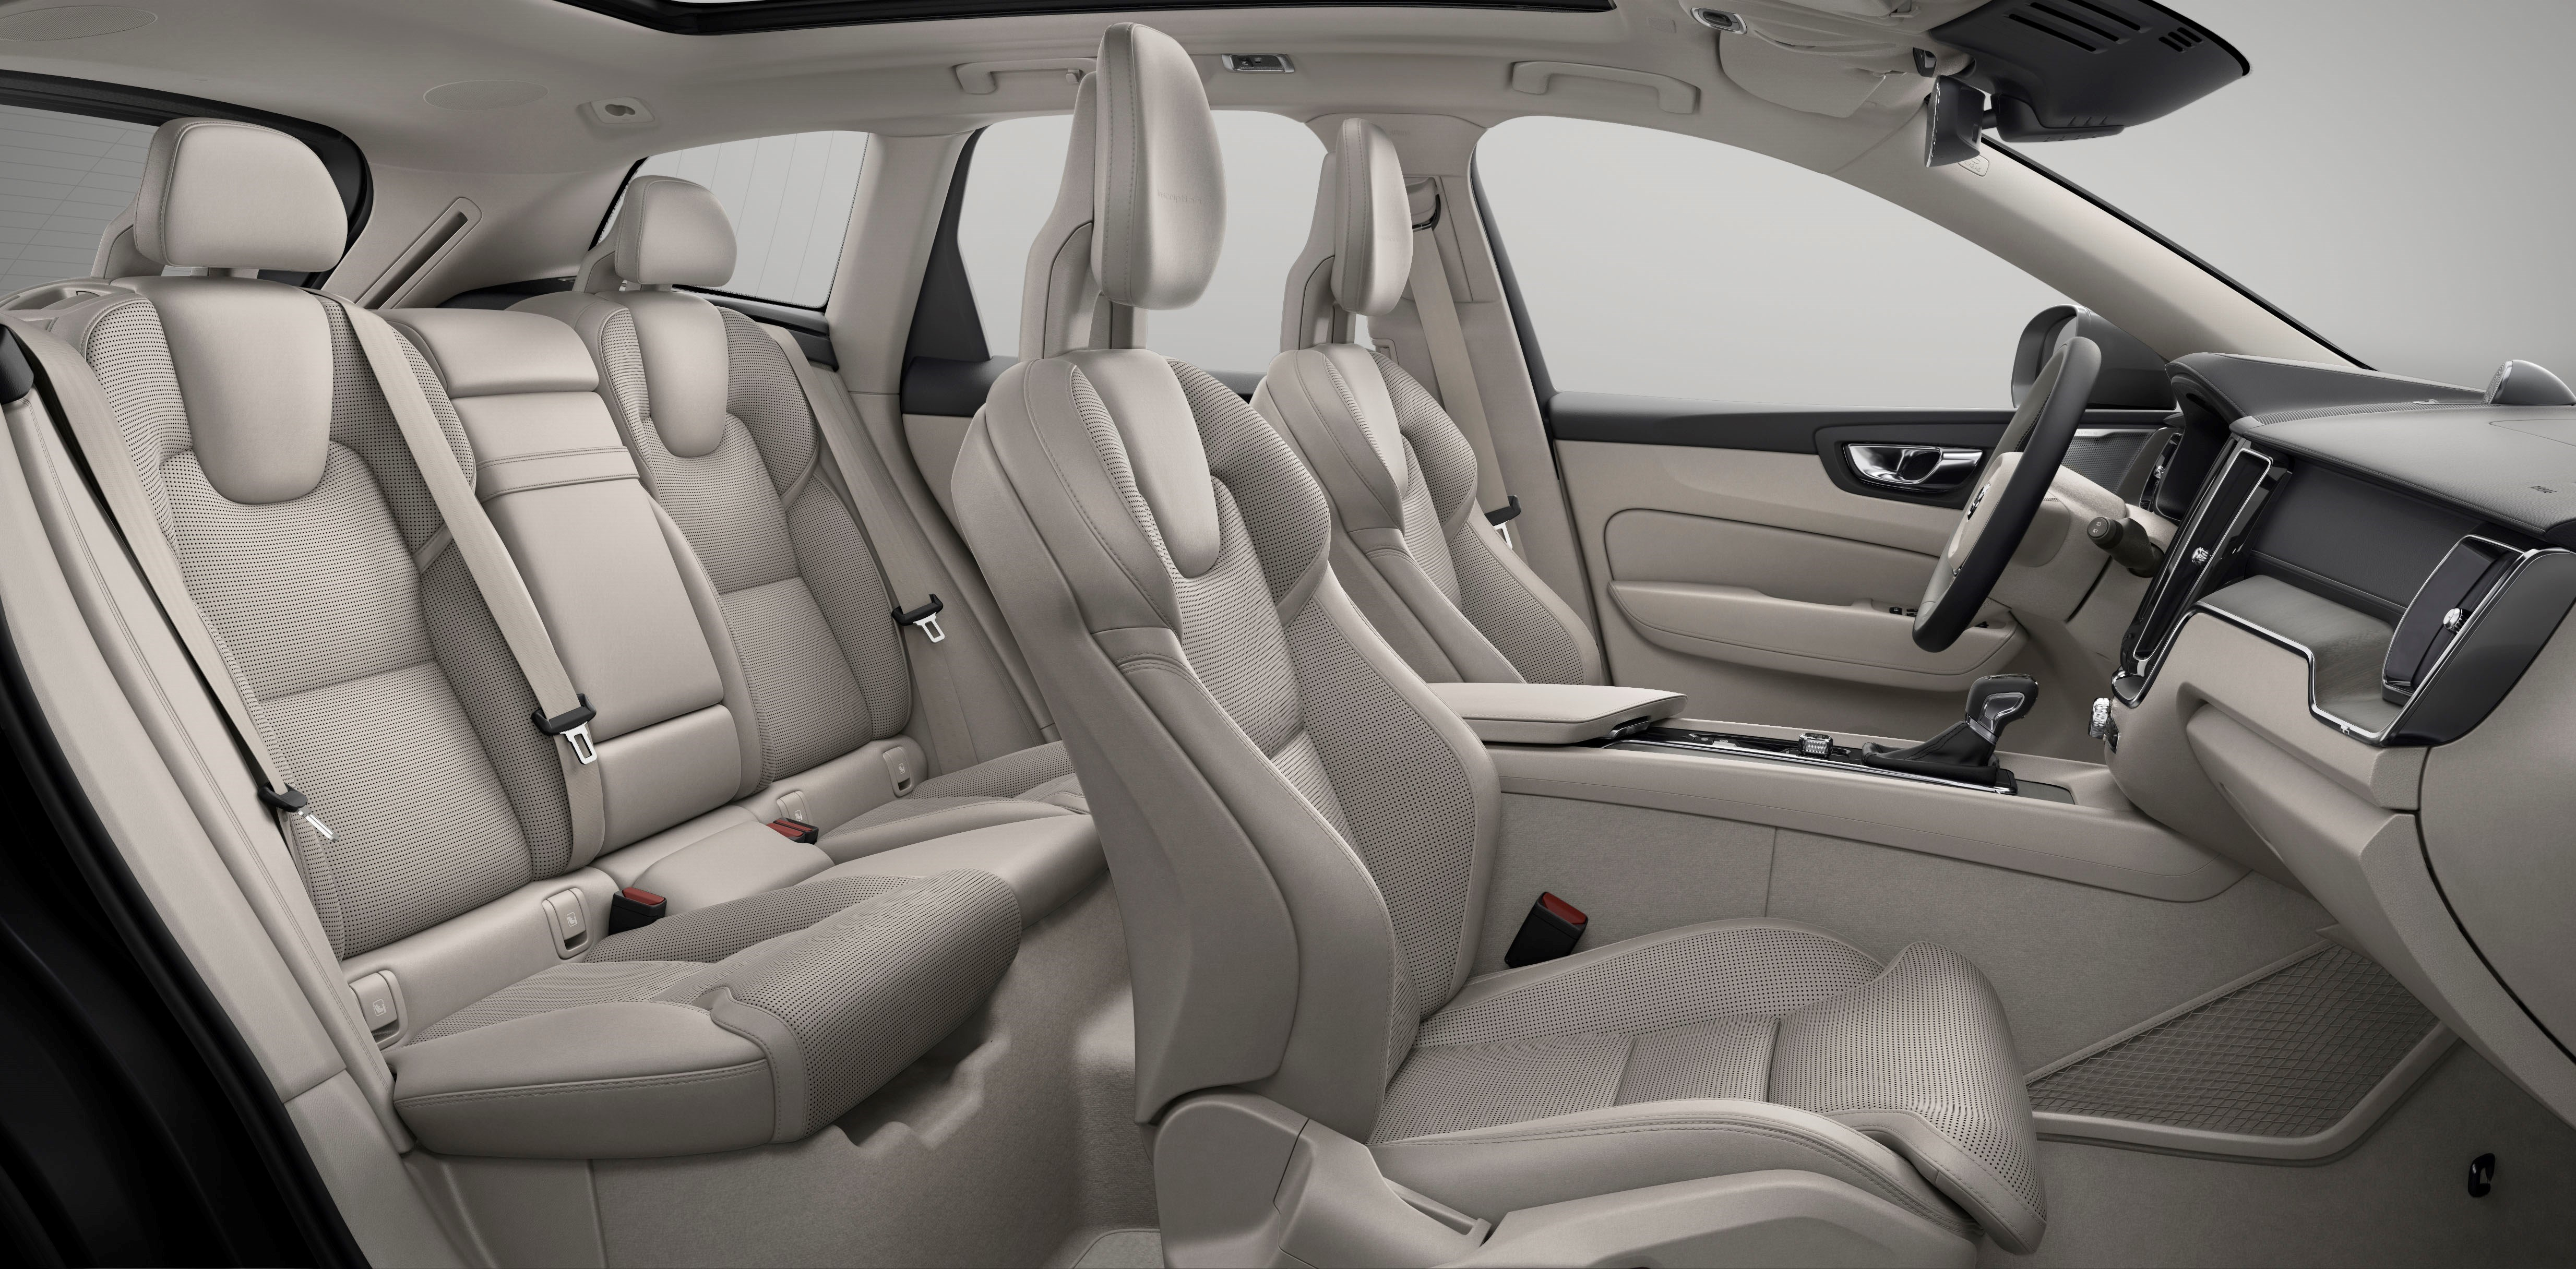 roadshow and full of style is safety auto chock preview hybrid volvo new